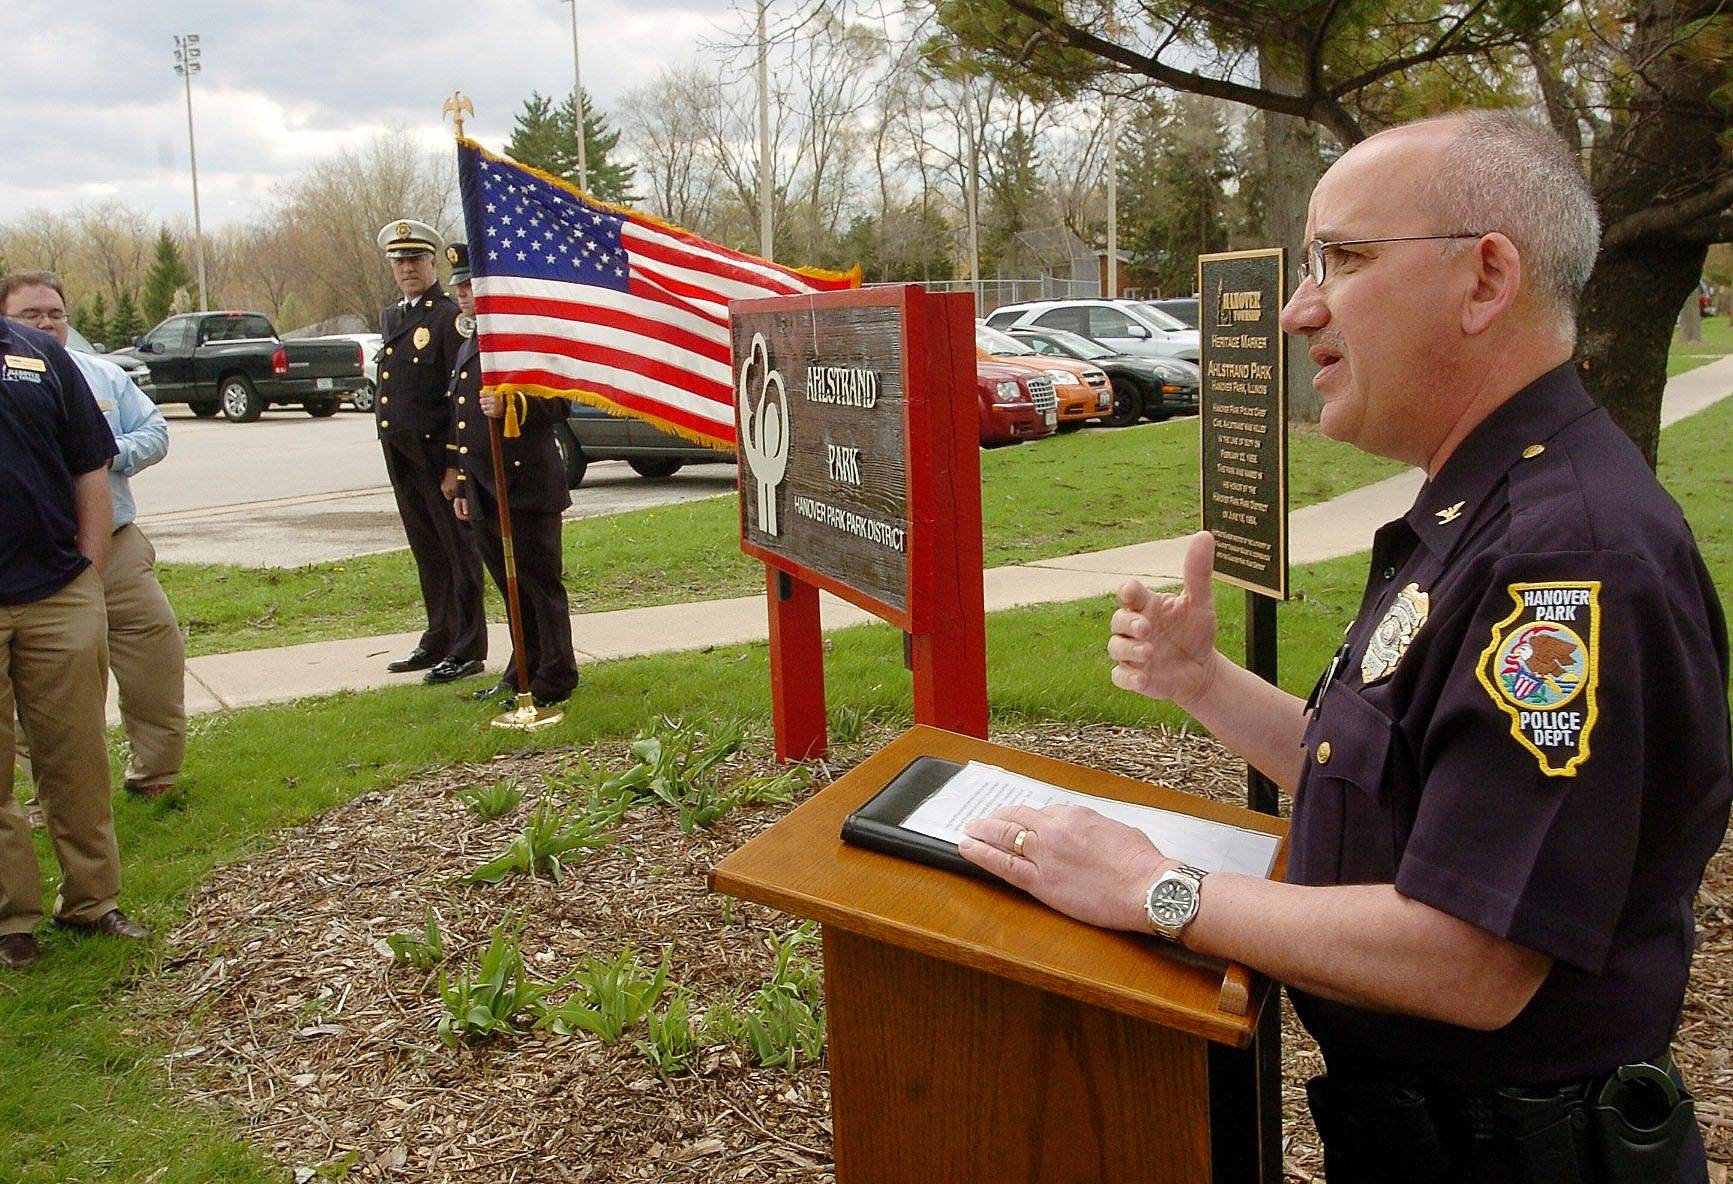 Deputy Police Chief Mark Getz says a few words Saturday during a ceremony to dedicate a marker at Ahlstrand Park commemorating the park's namesake, Carl Ahlstrand, former Hanover Park Police Chief who was killed in the line of duty in 1959.